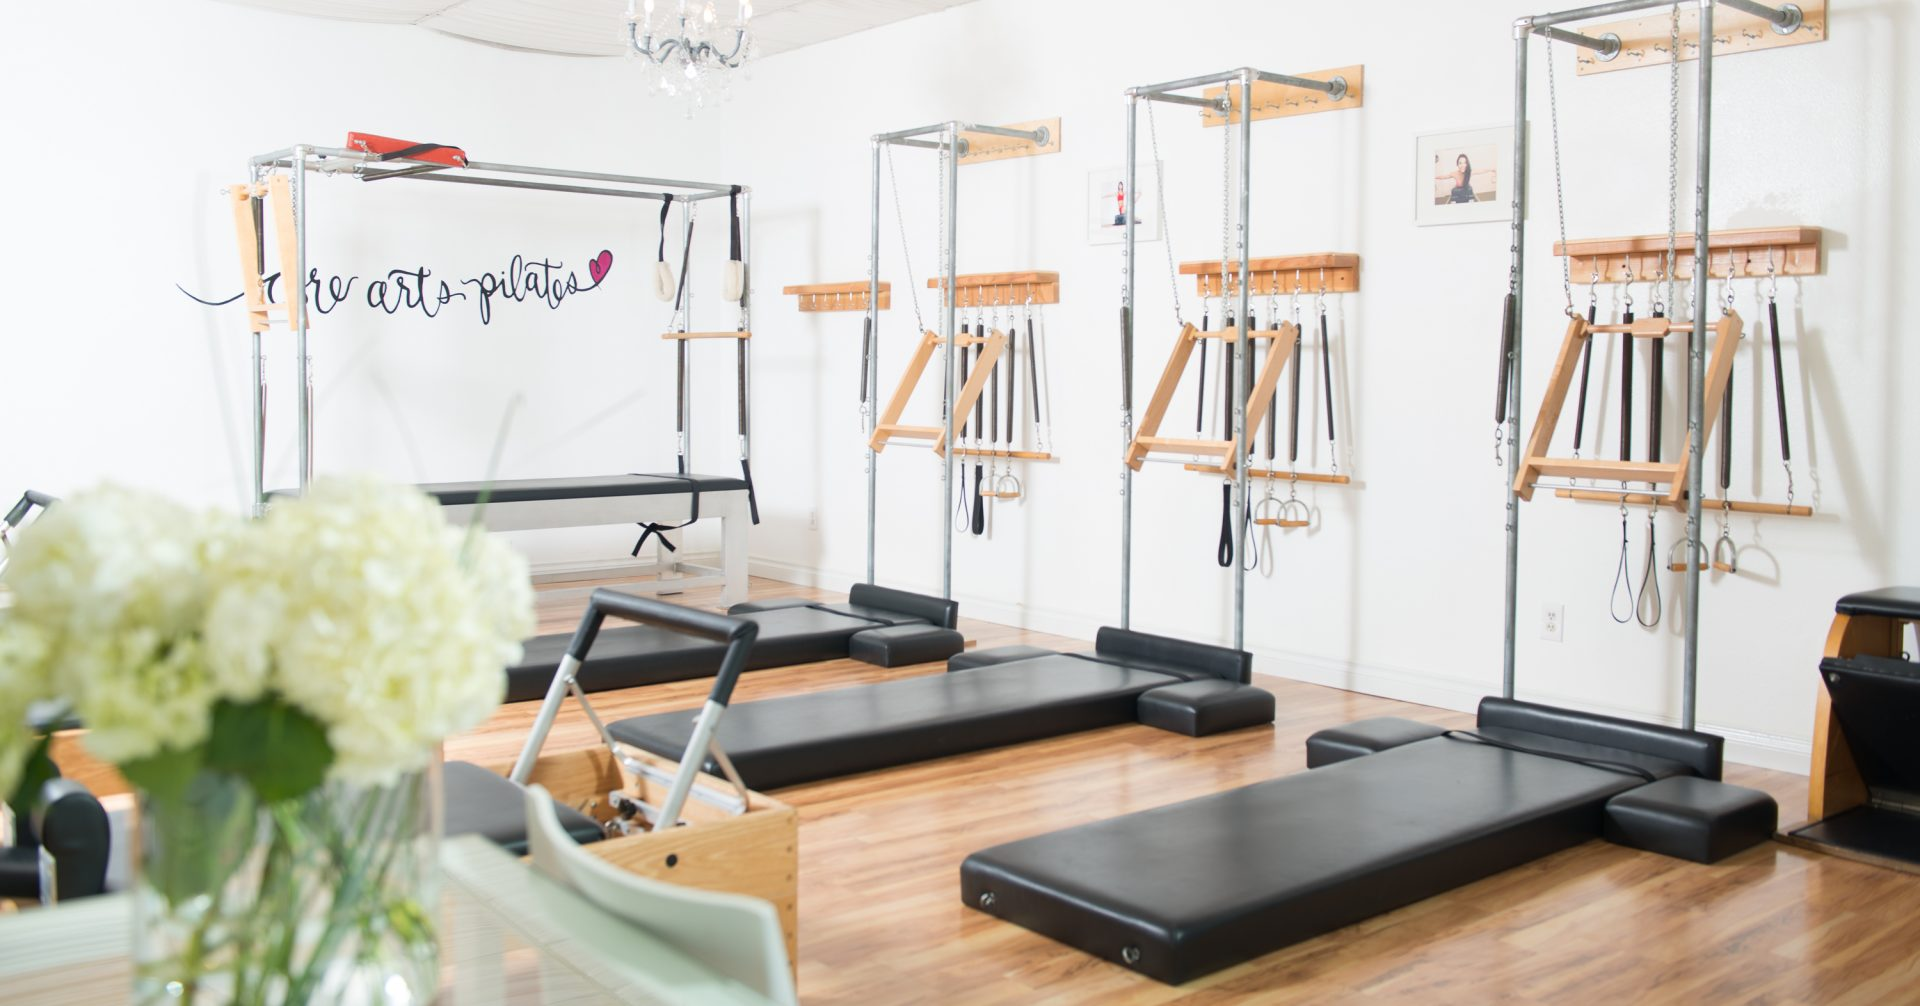 The Reformer Class at Core Arts Pilates